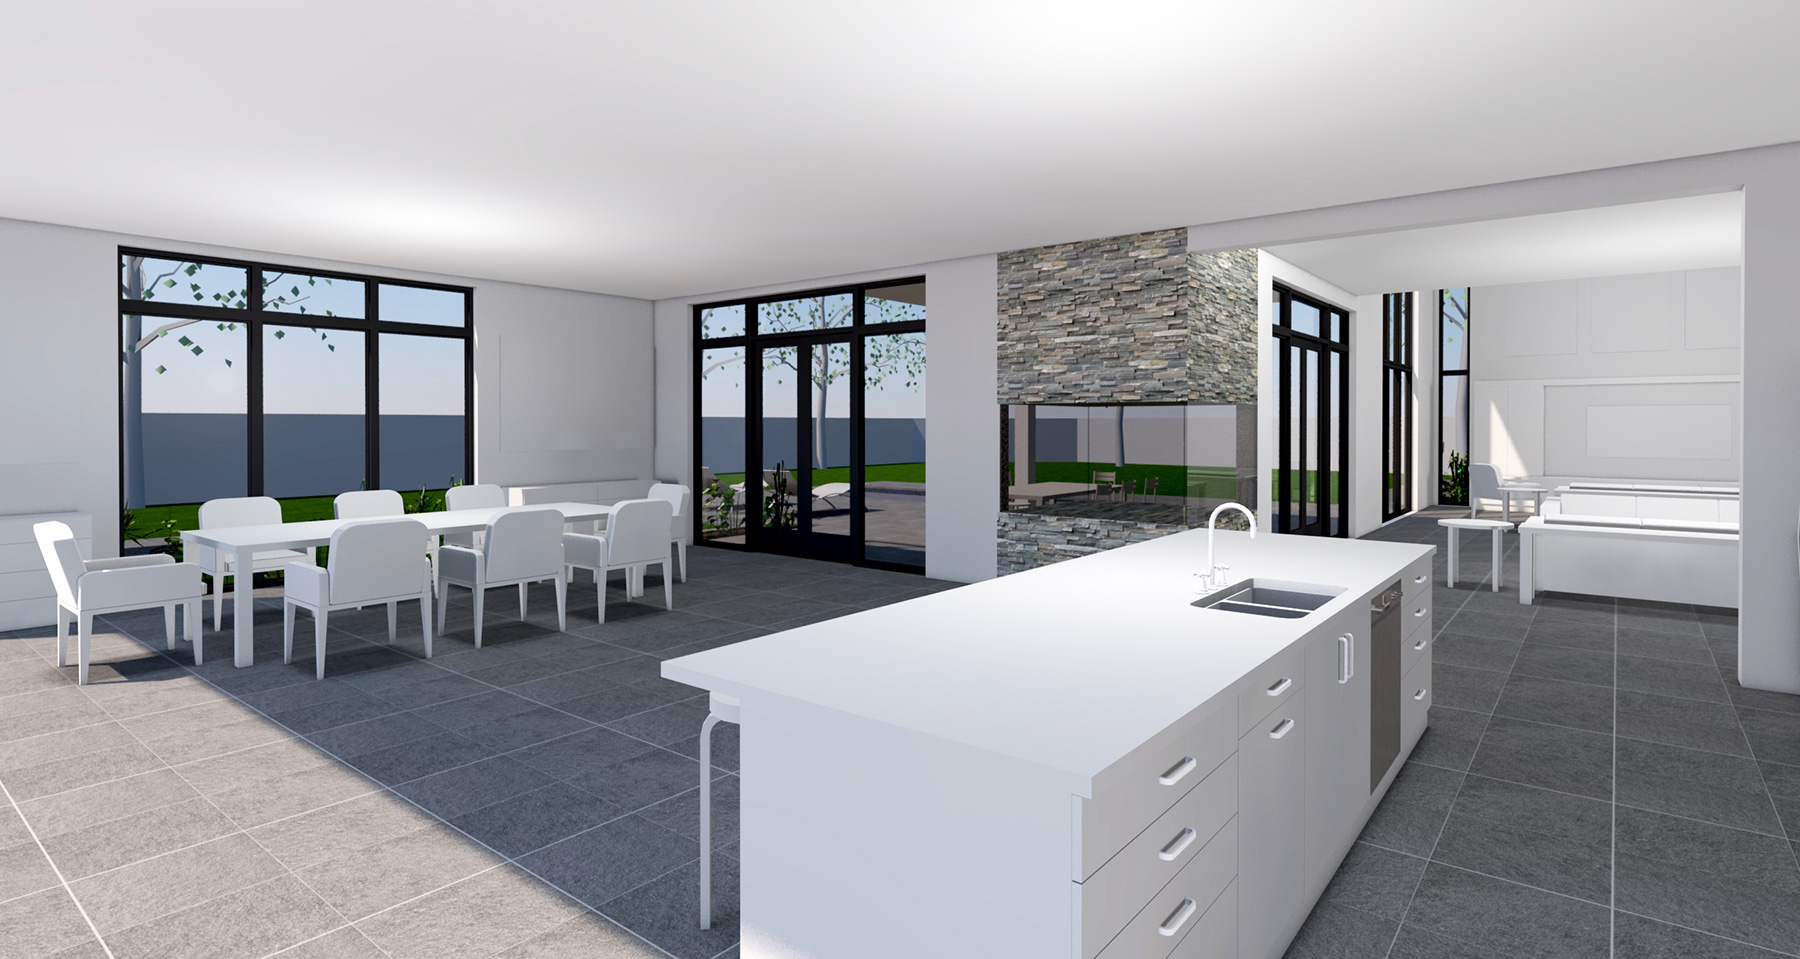 KITCHEN TO DINING AND LIVING ROOM